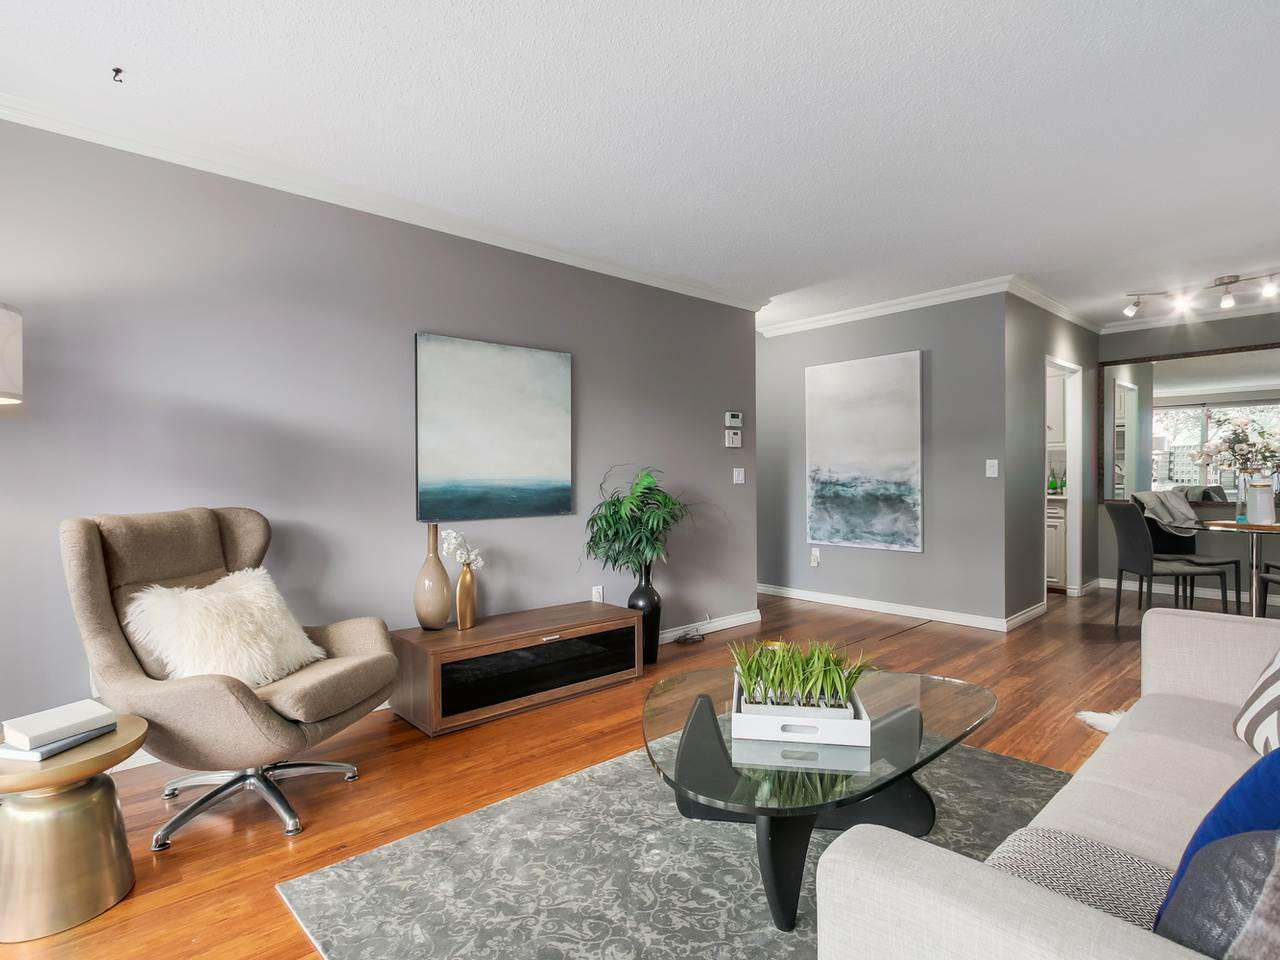 Photo 3: 103 1412 W 14TH Avenue in Vancouver: Fairview VW Condo for sale (Vancouver West)  : MLS® # R2048701